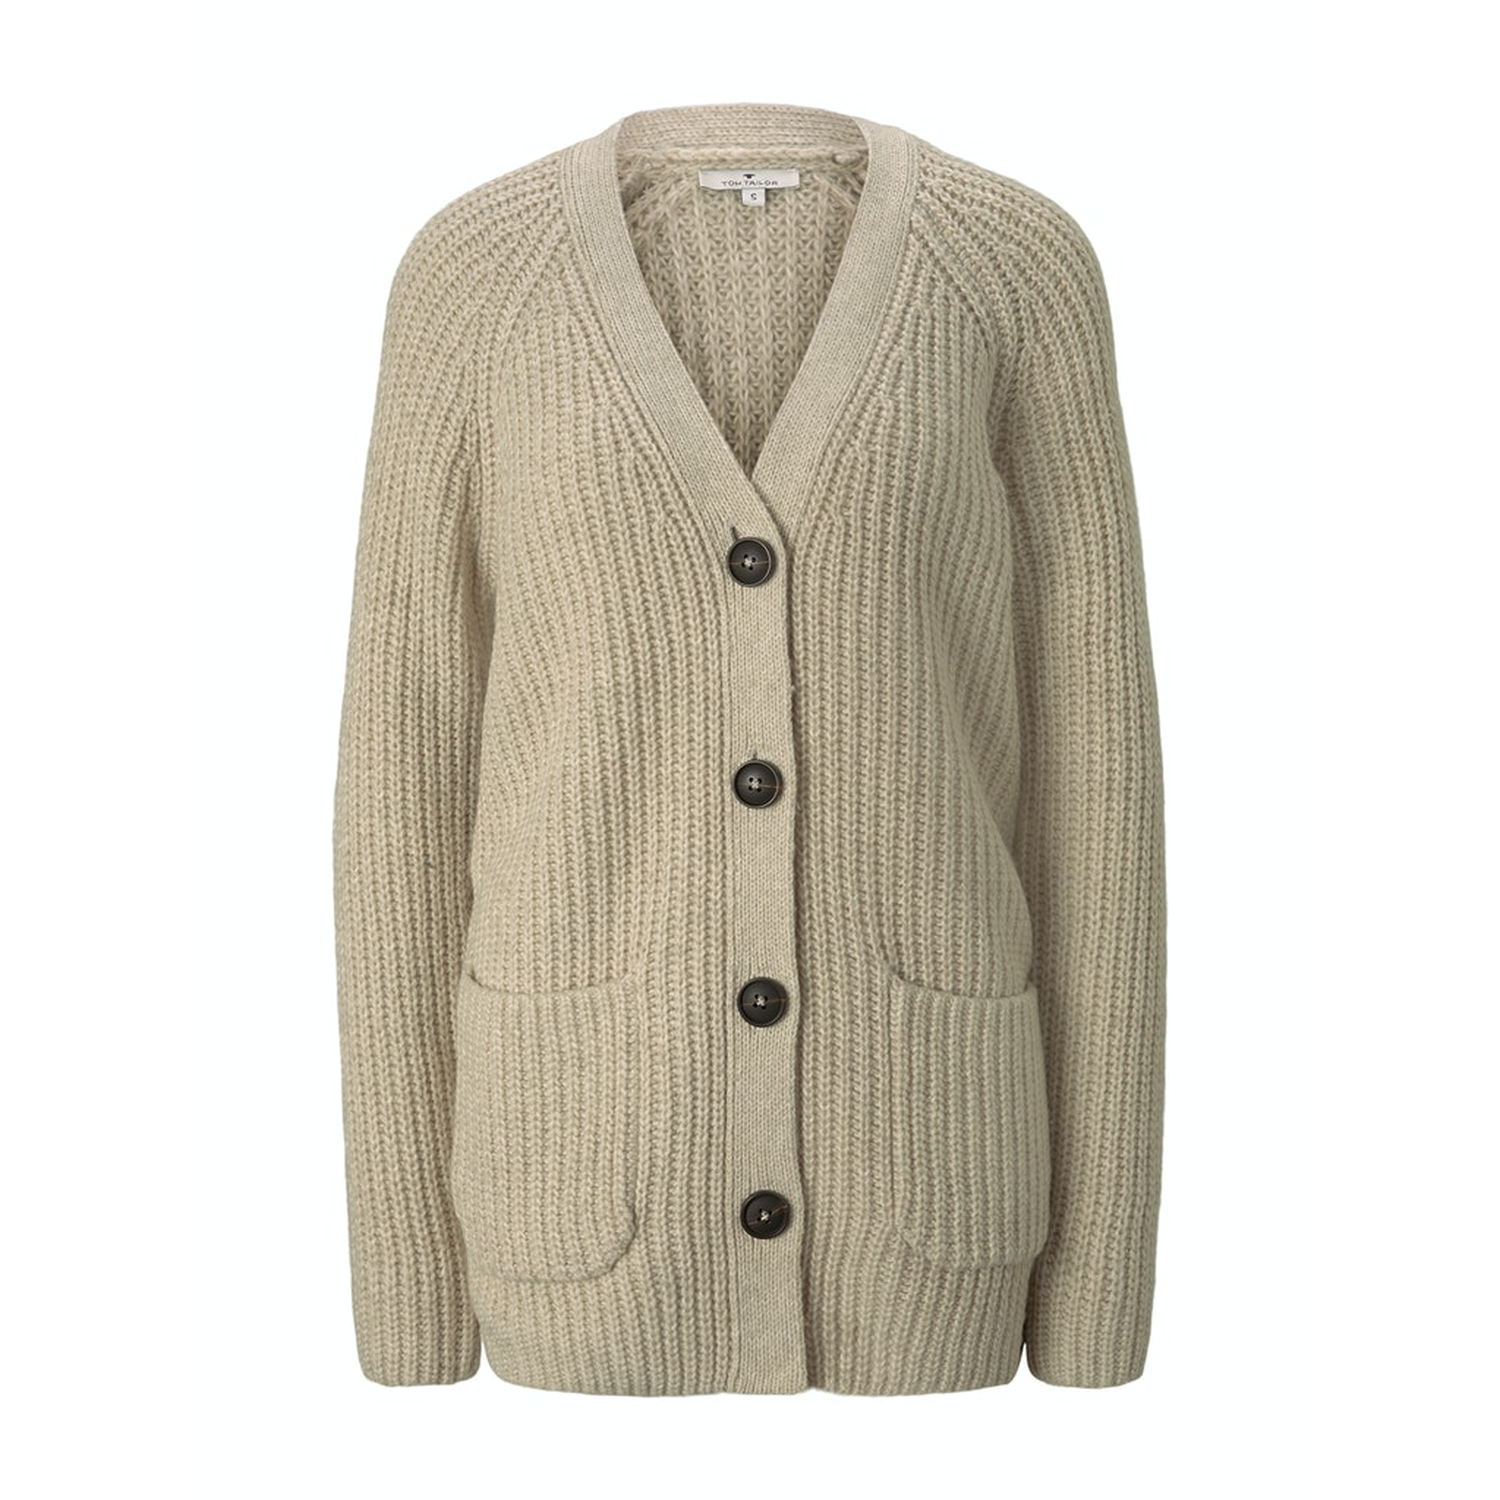 TOM TAILOR Strickjacke Knopfleiste beige